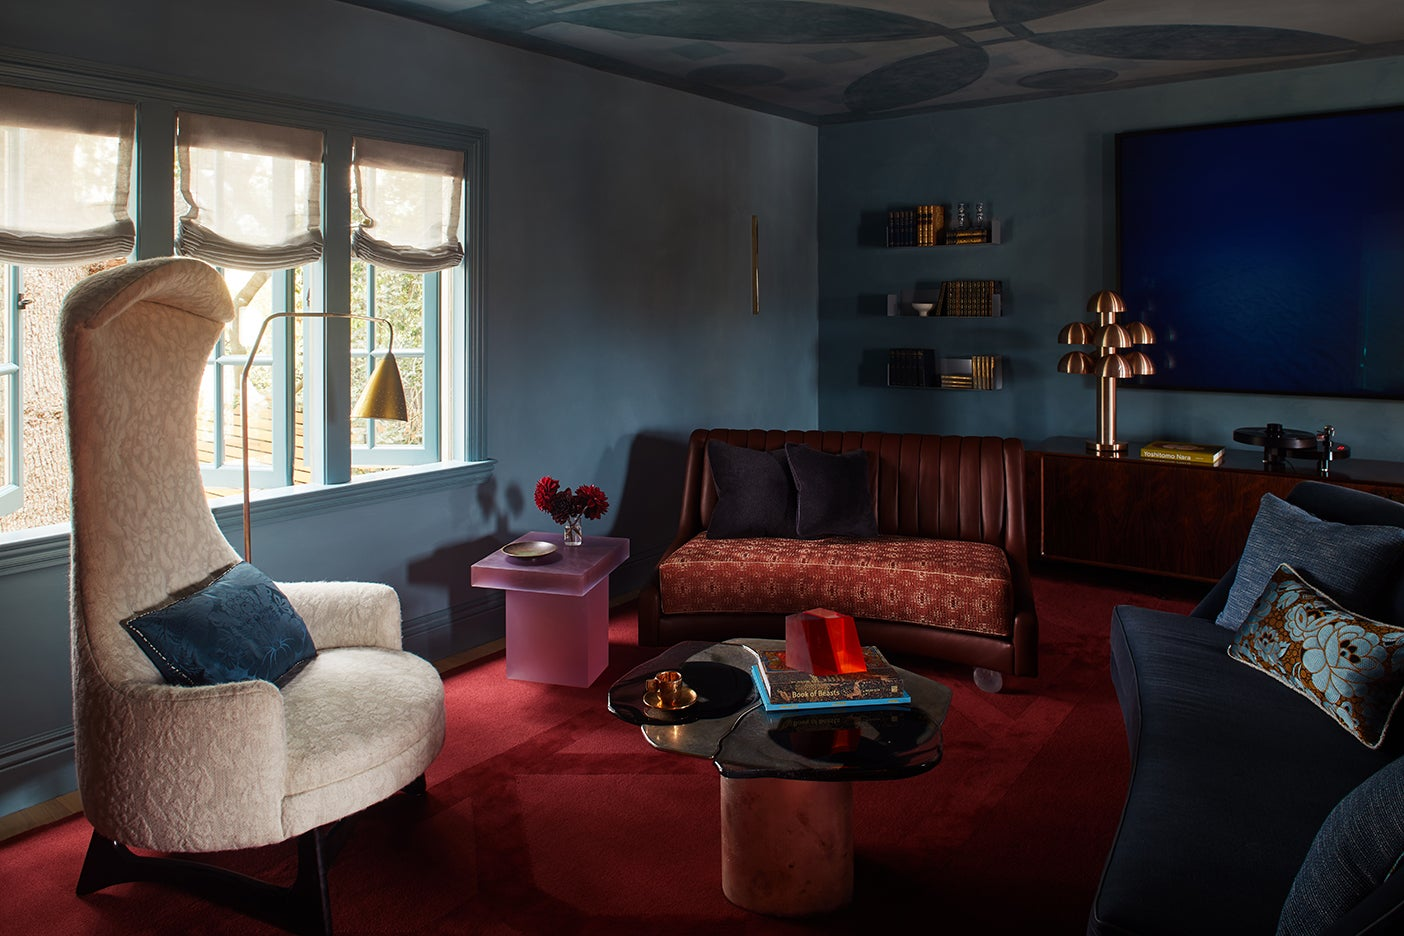 cozy lounge space with red rug